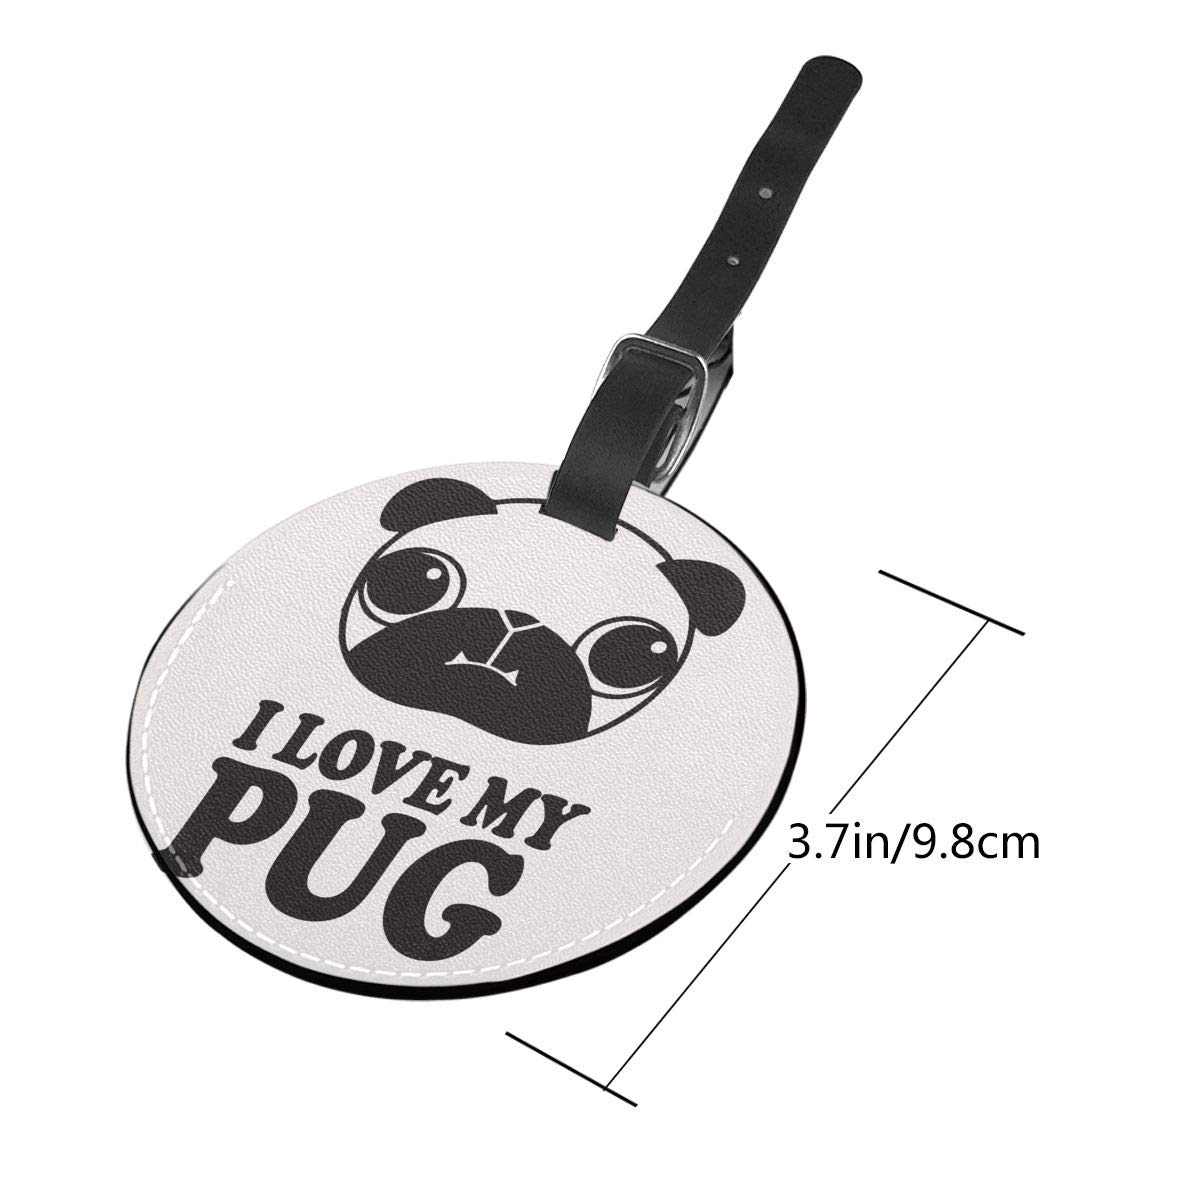 Jinsshop 4 PCS Leather Luggage Tag With Name ID Card Perfect To Quickly Spot Luggage Suitcase I Love My Pug